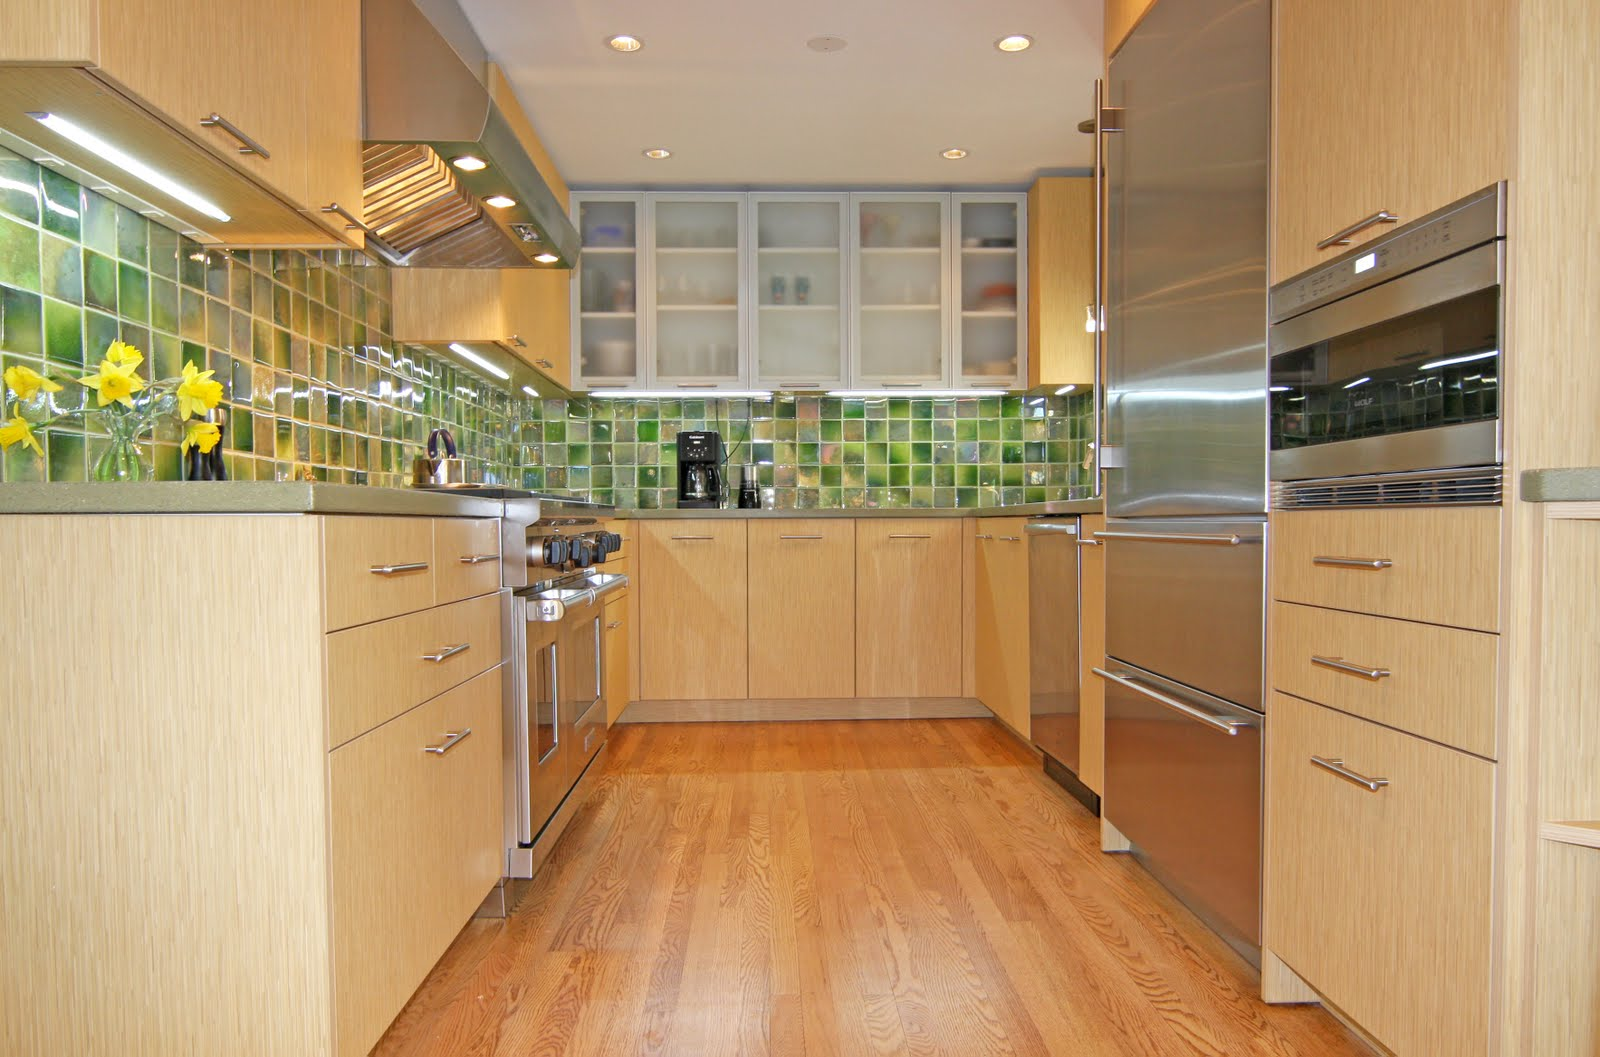 Galley kitchen new design ideas kitchen remodeler for Galley kitchen designs ideas